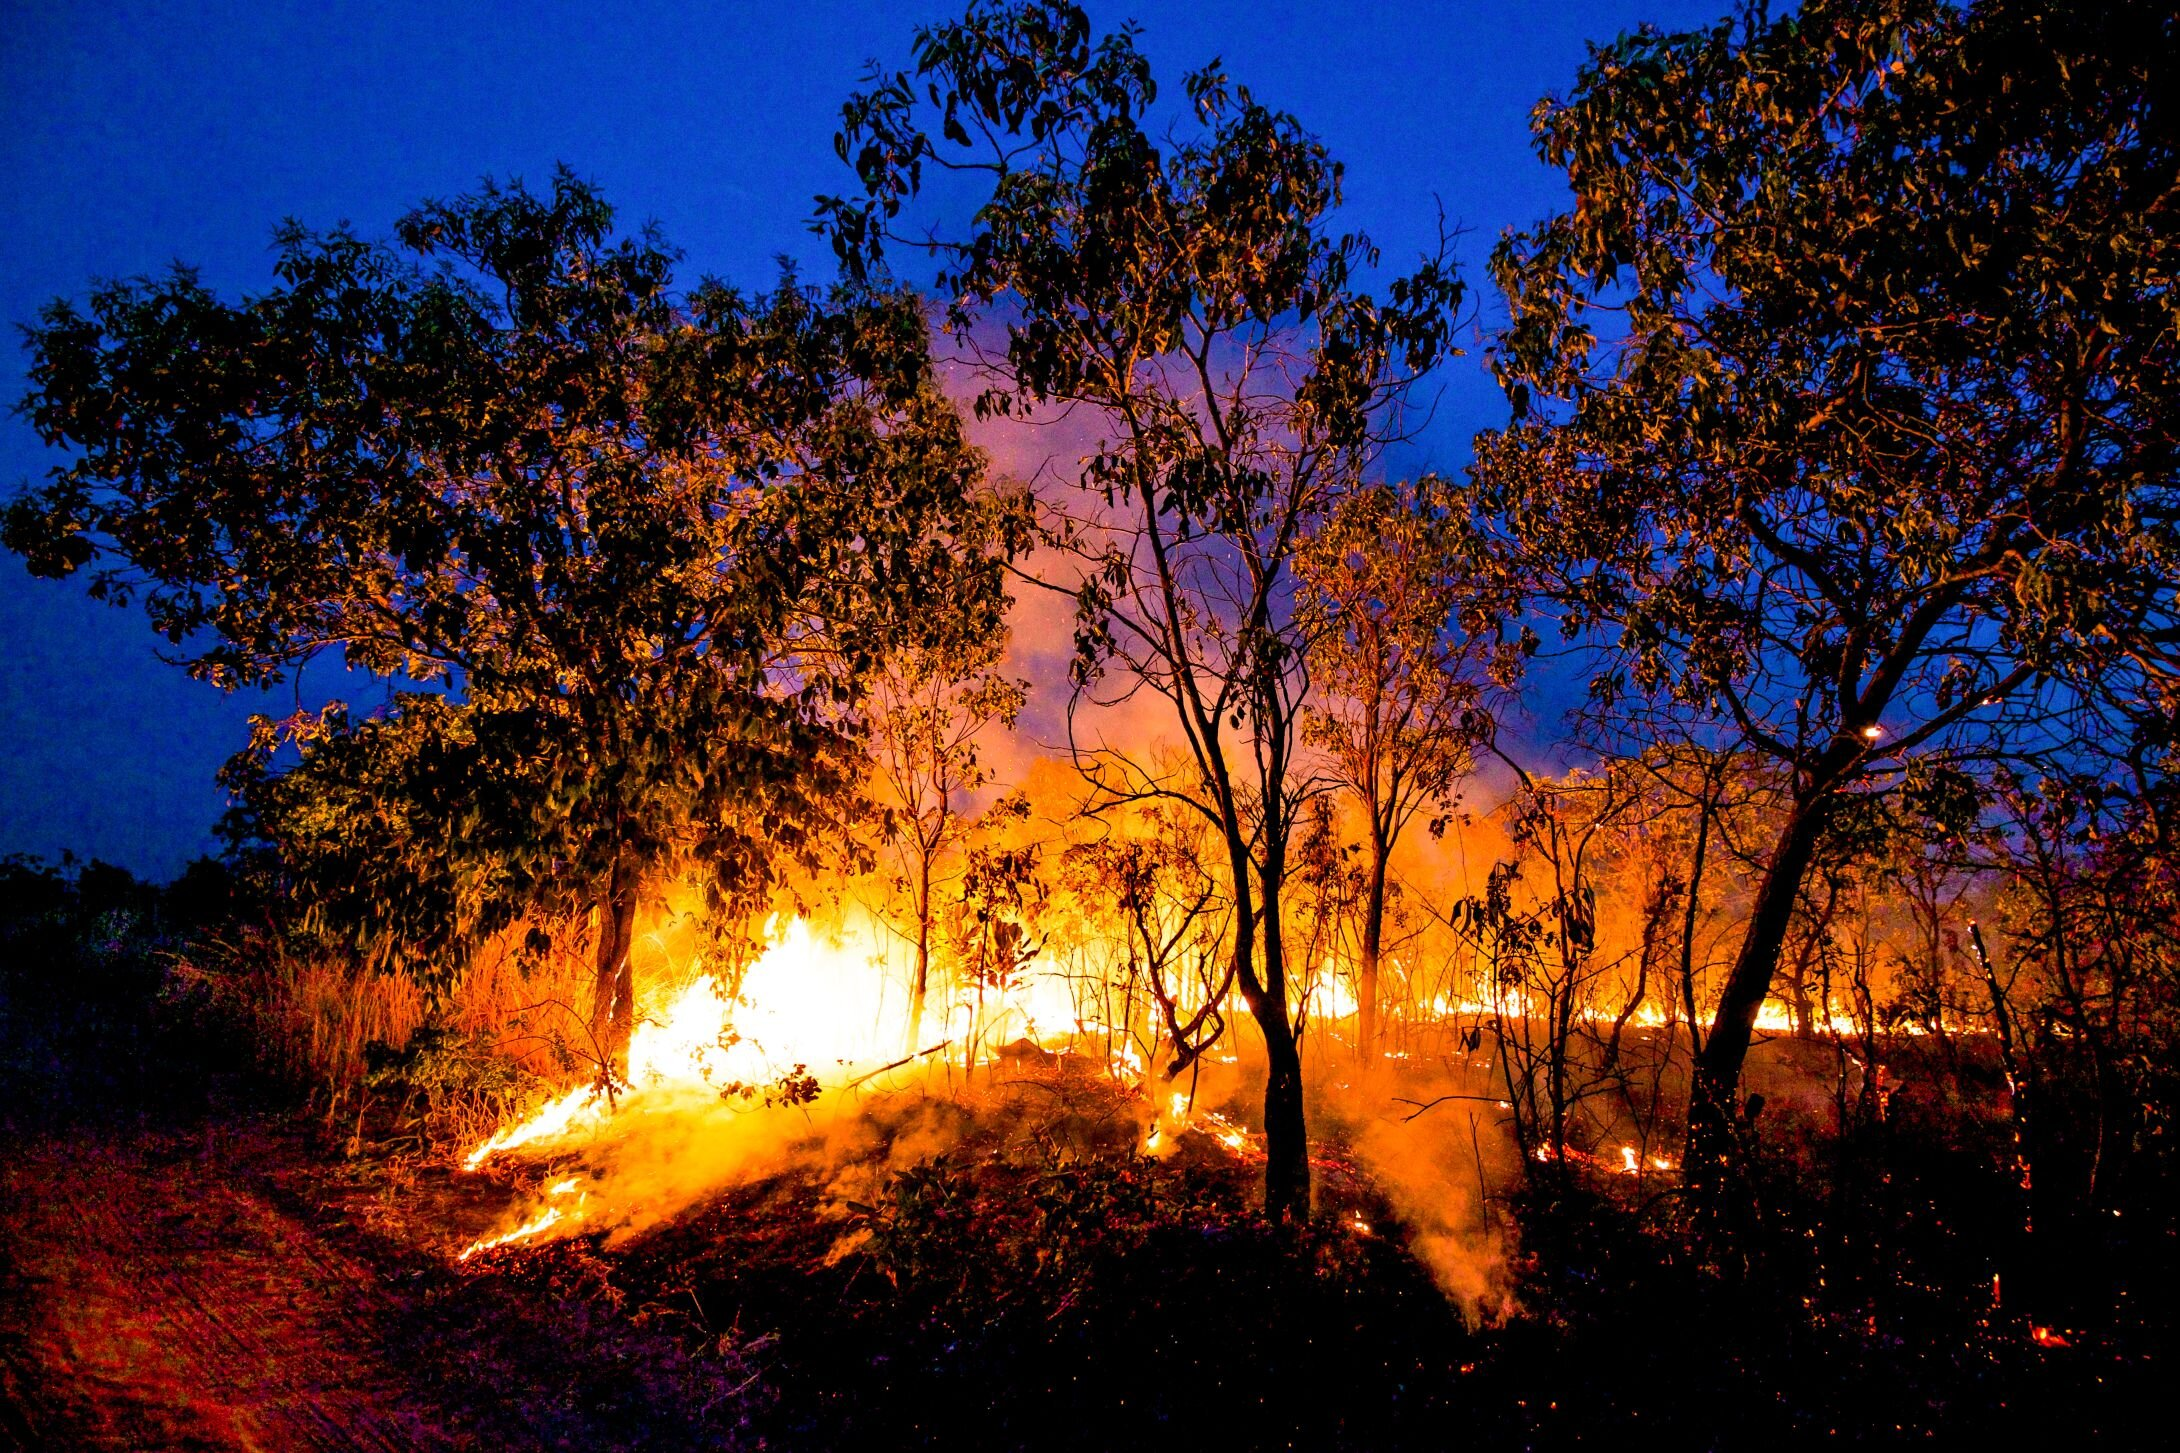 by-night-forest-fires-can-be-seen-for-miles-tearing-through-the-cerrado-ecosystems-1-2180x1454.jpeg